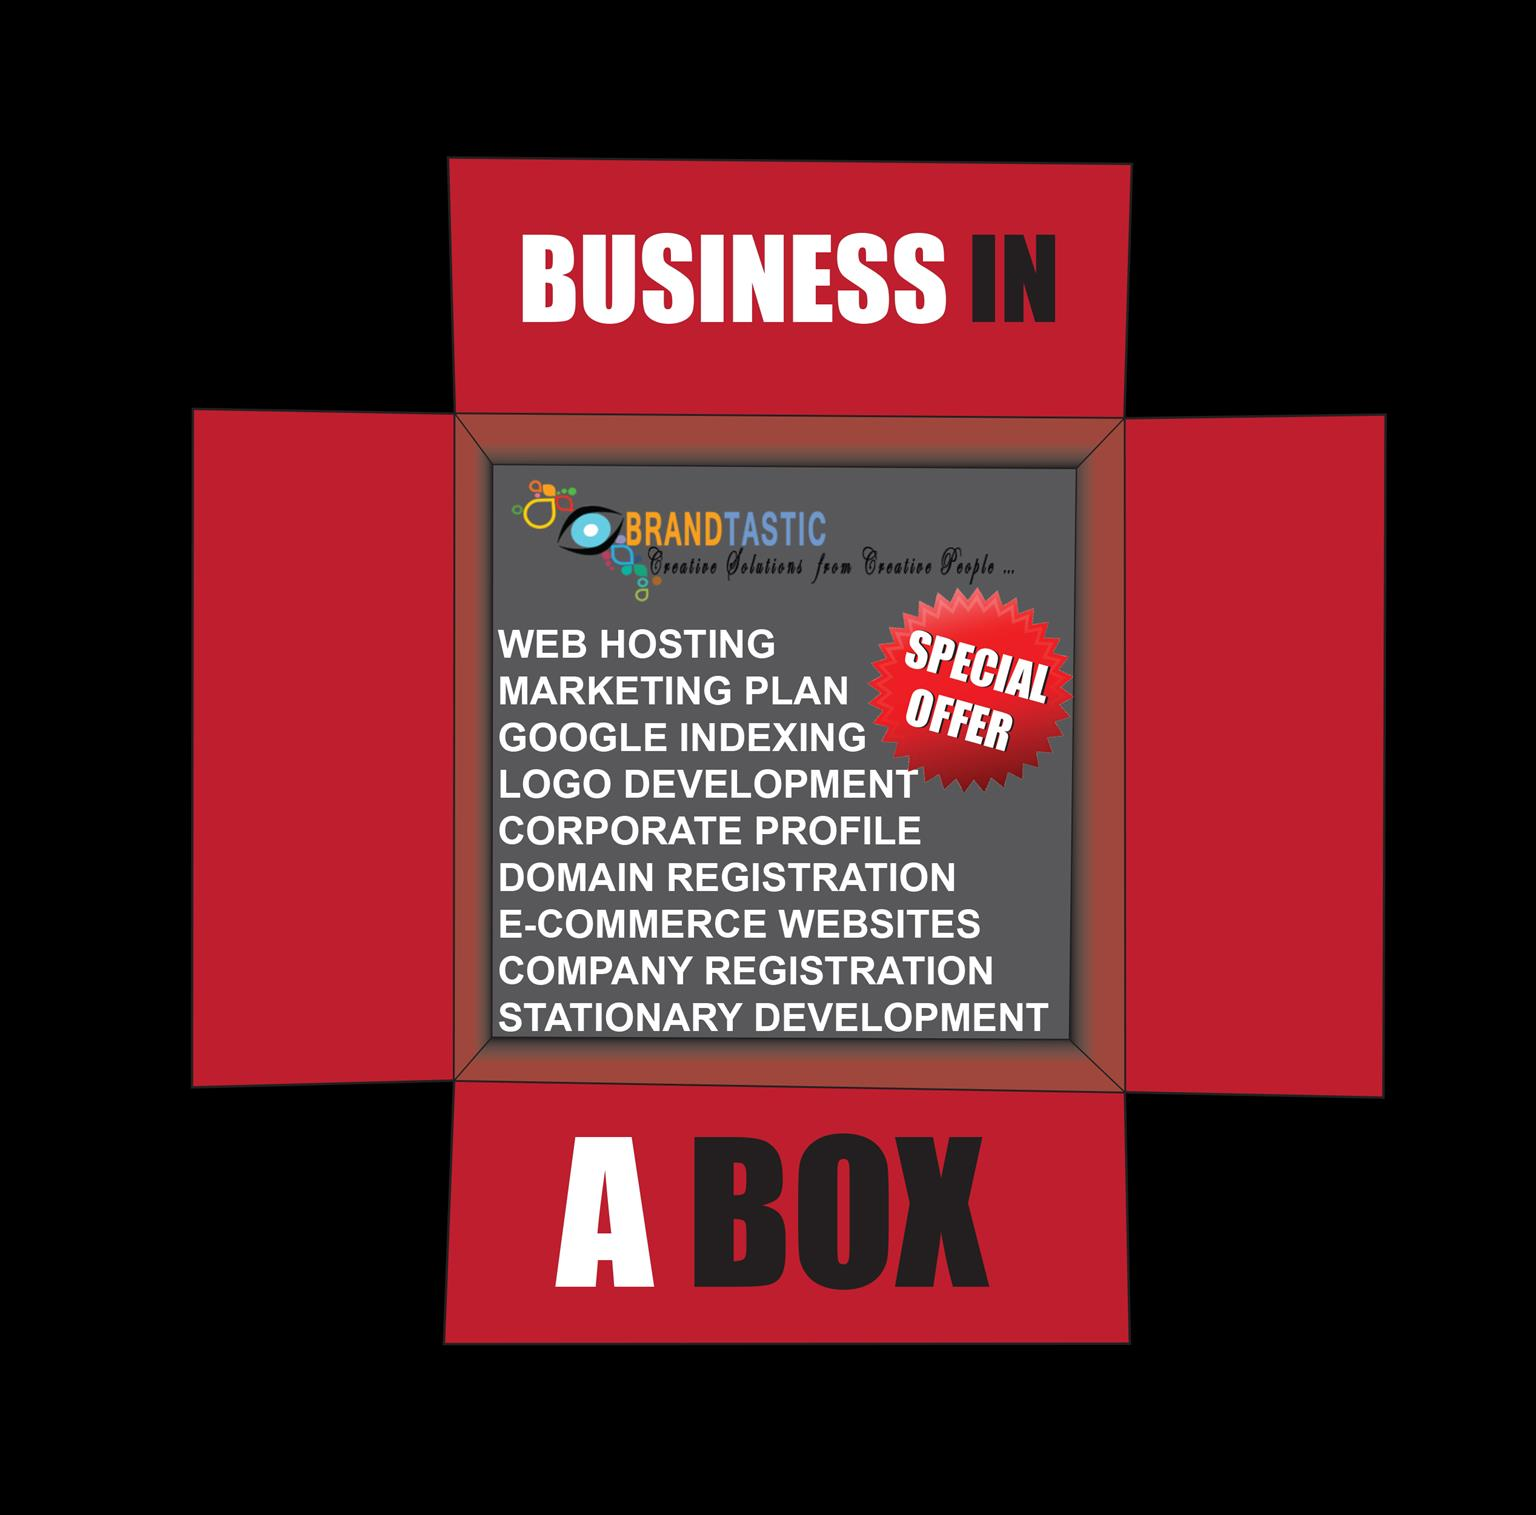 Business In A Box: Home Based Businesses